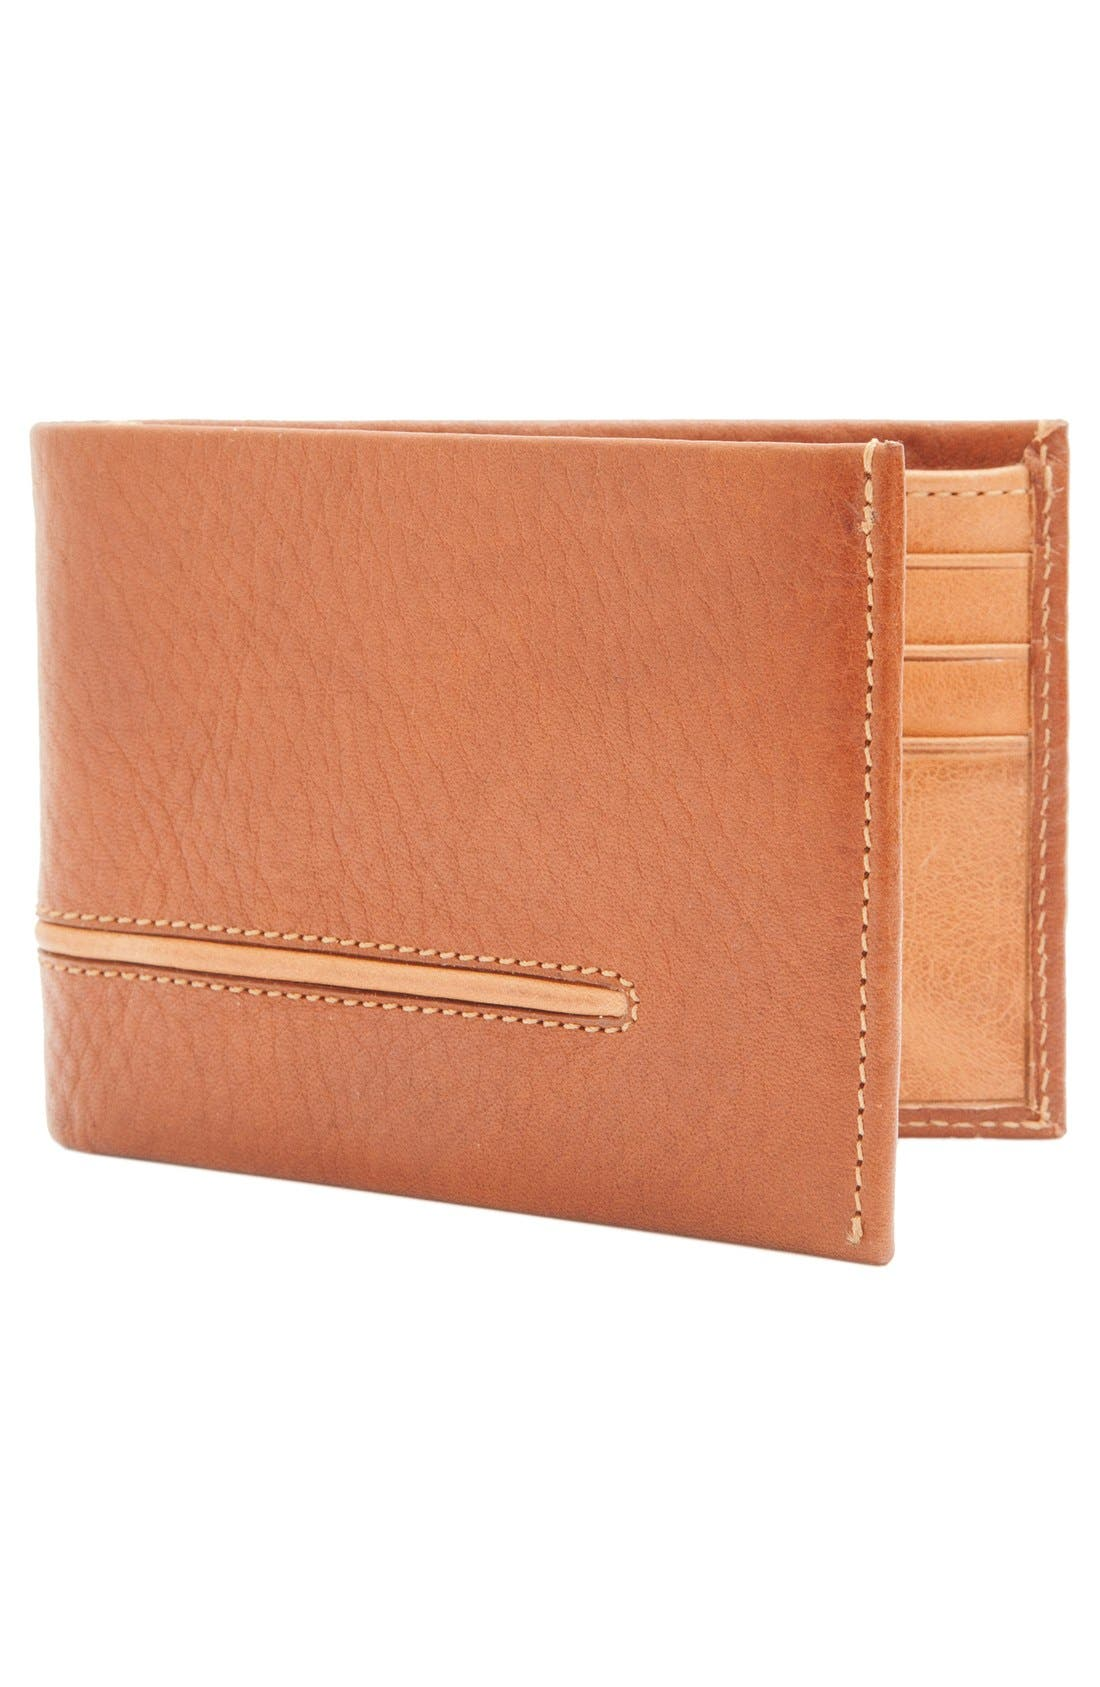 Leather L-Fold Wallet,                             Alternate thumbnail 2, color,